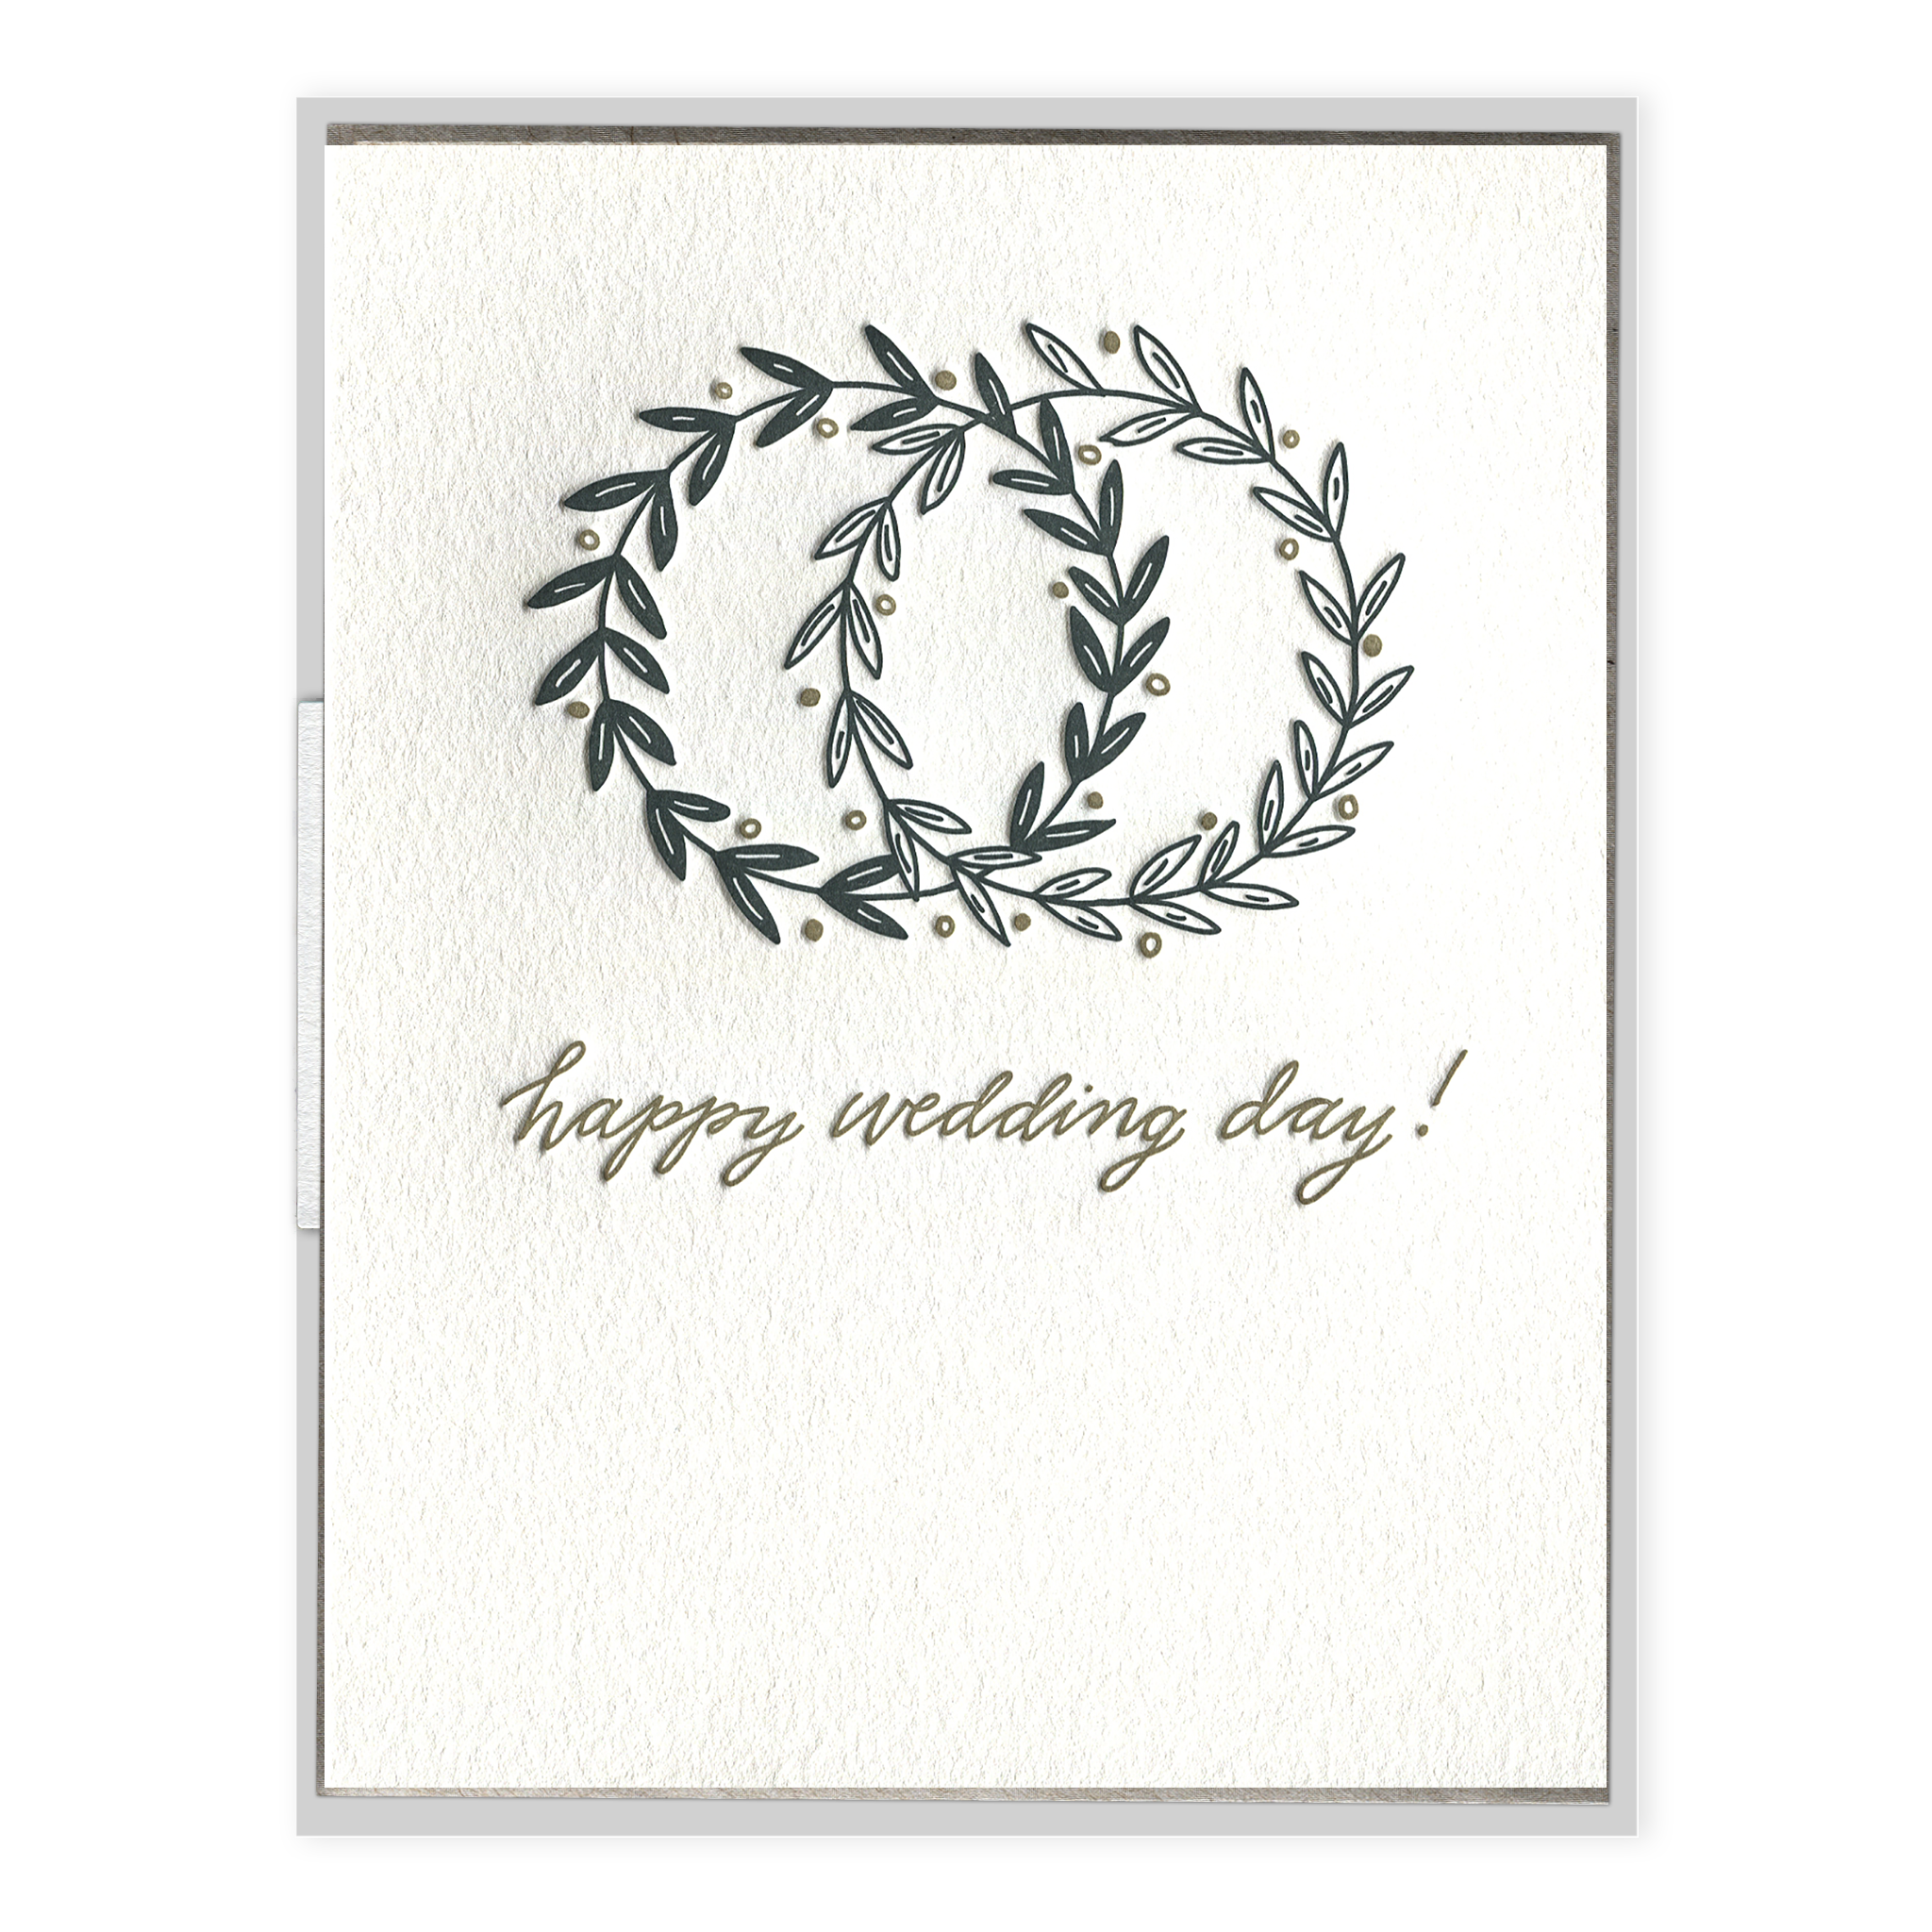 Happy wedding day letterpress. Postcard drawing vector library